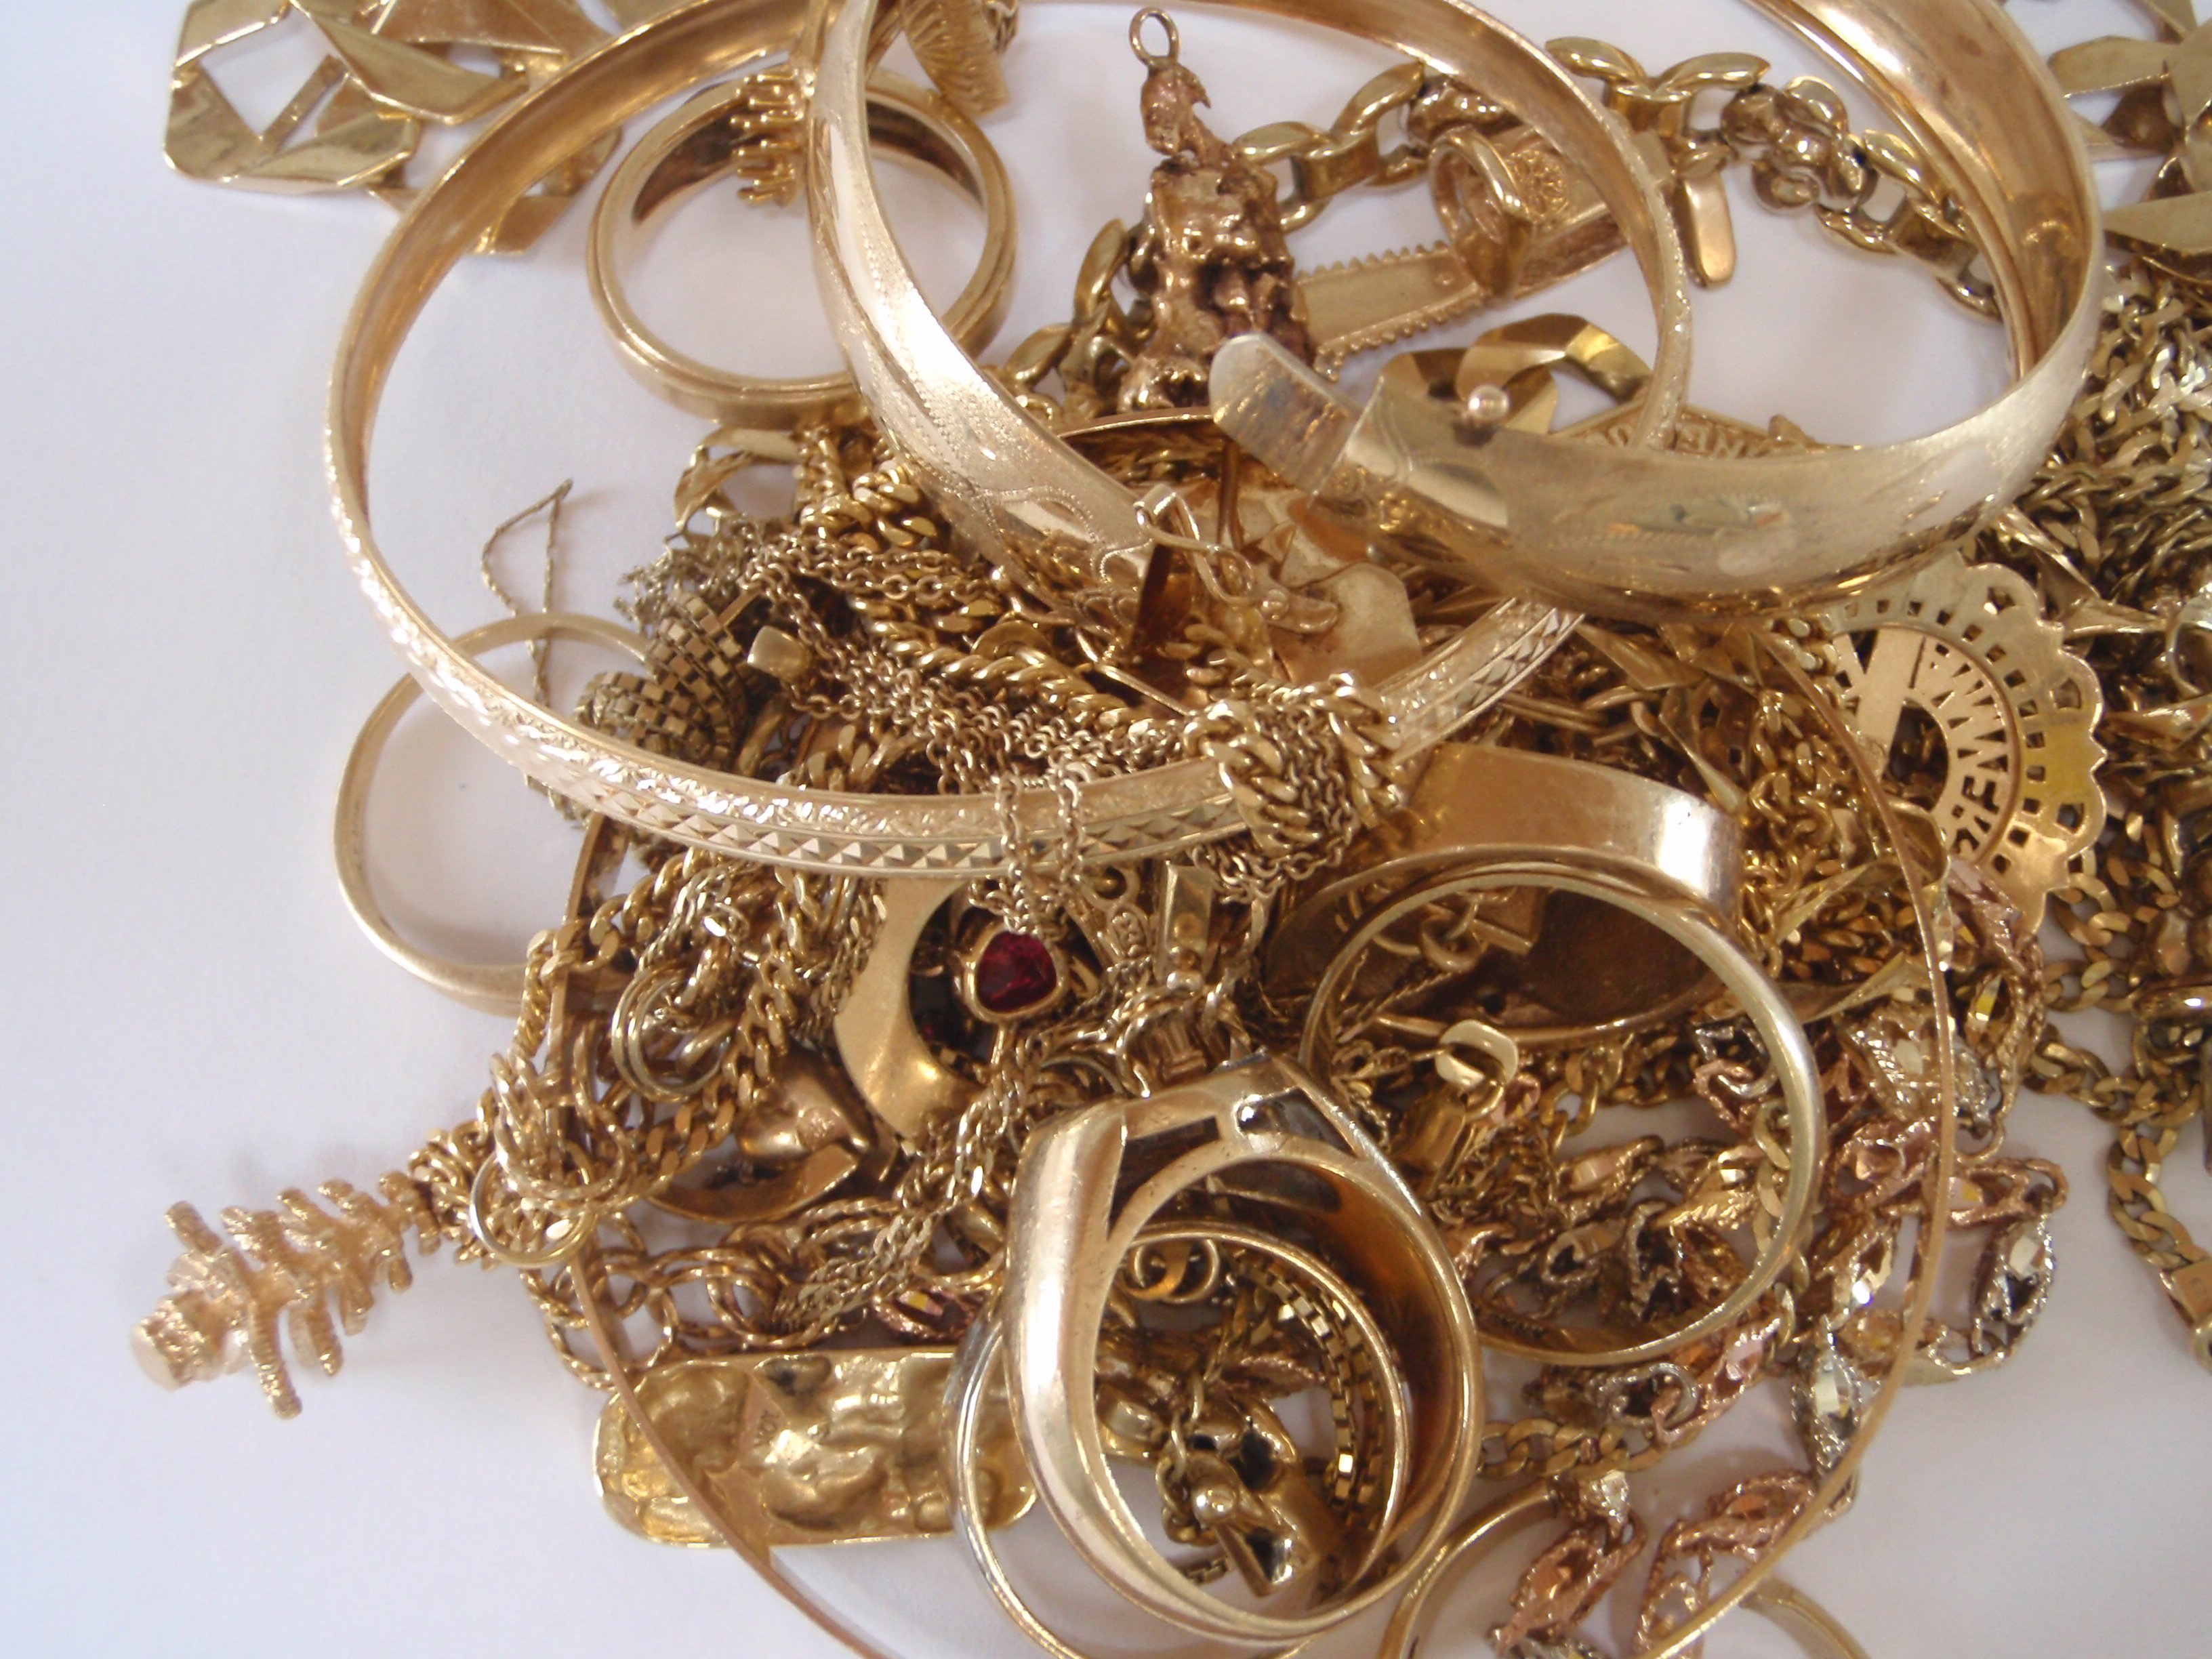 royalty more picture free scrap bracelet stock stack pictures photo istock gold of